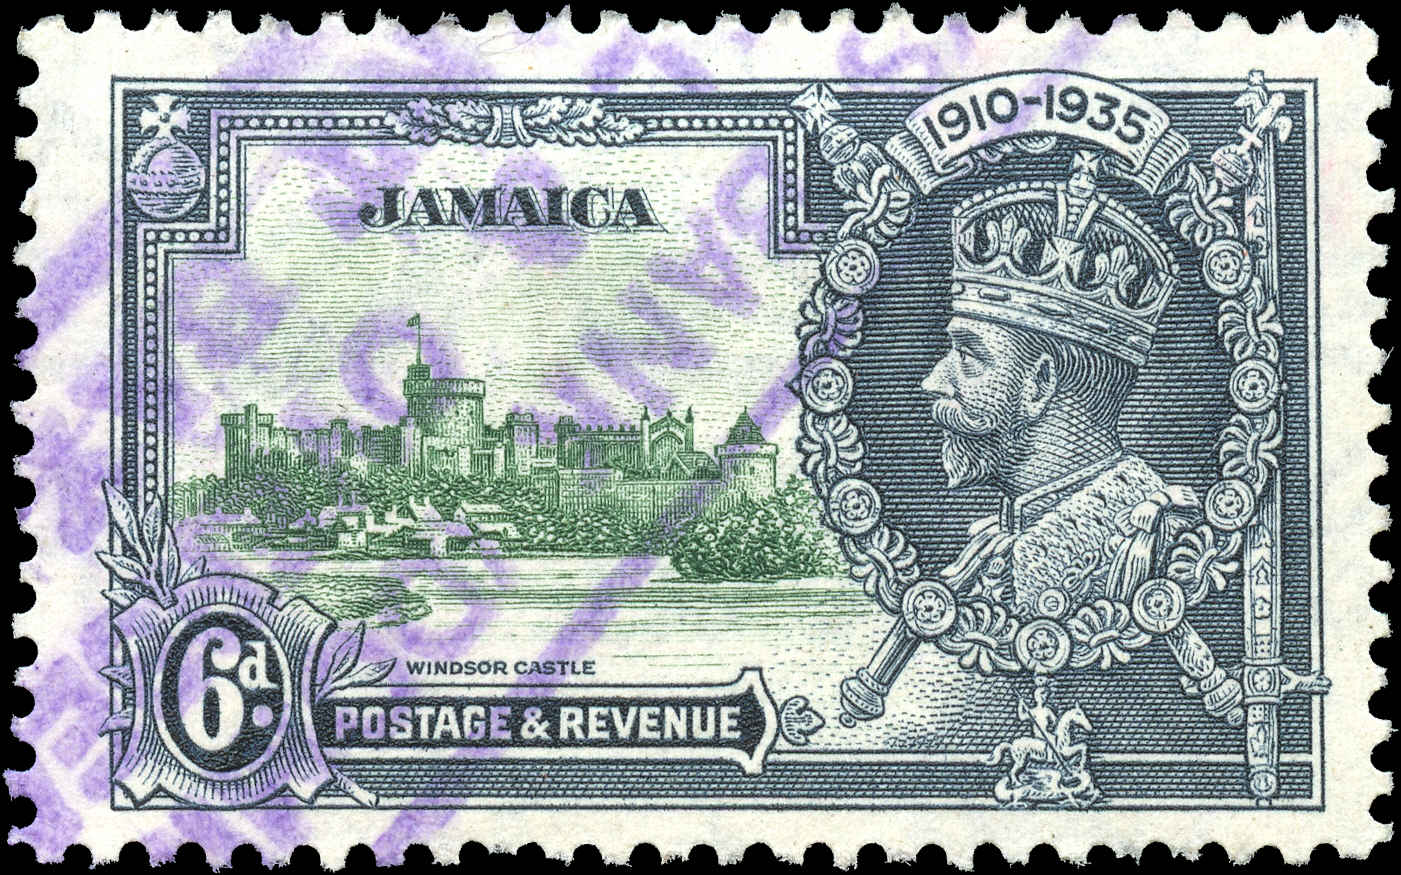 Jamaica, #111, F-VF, Used